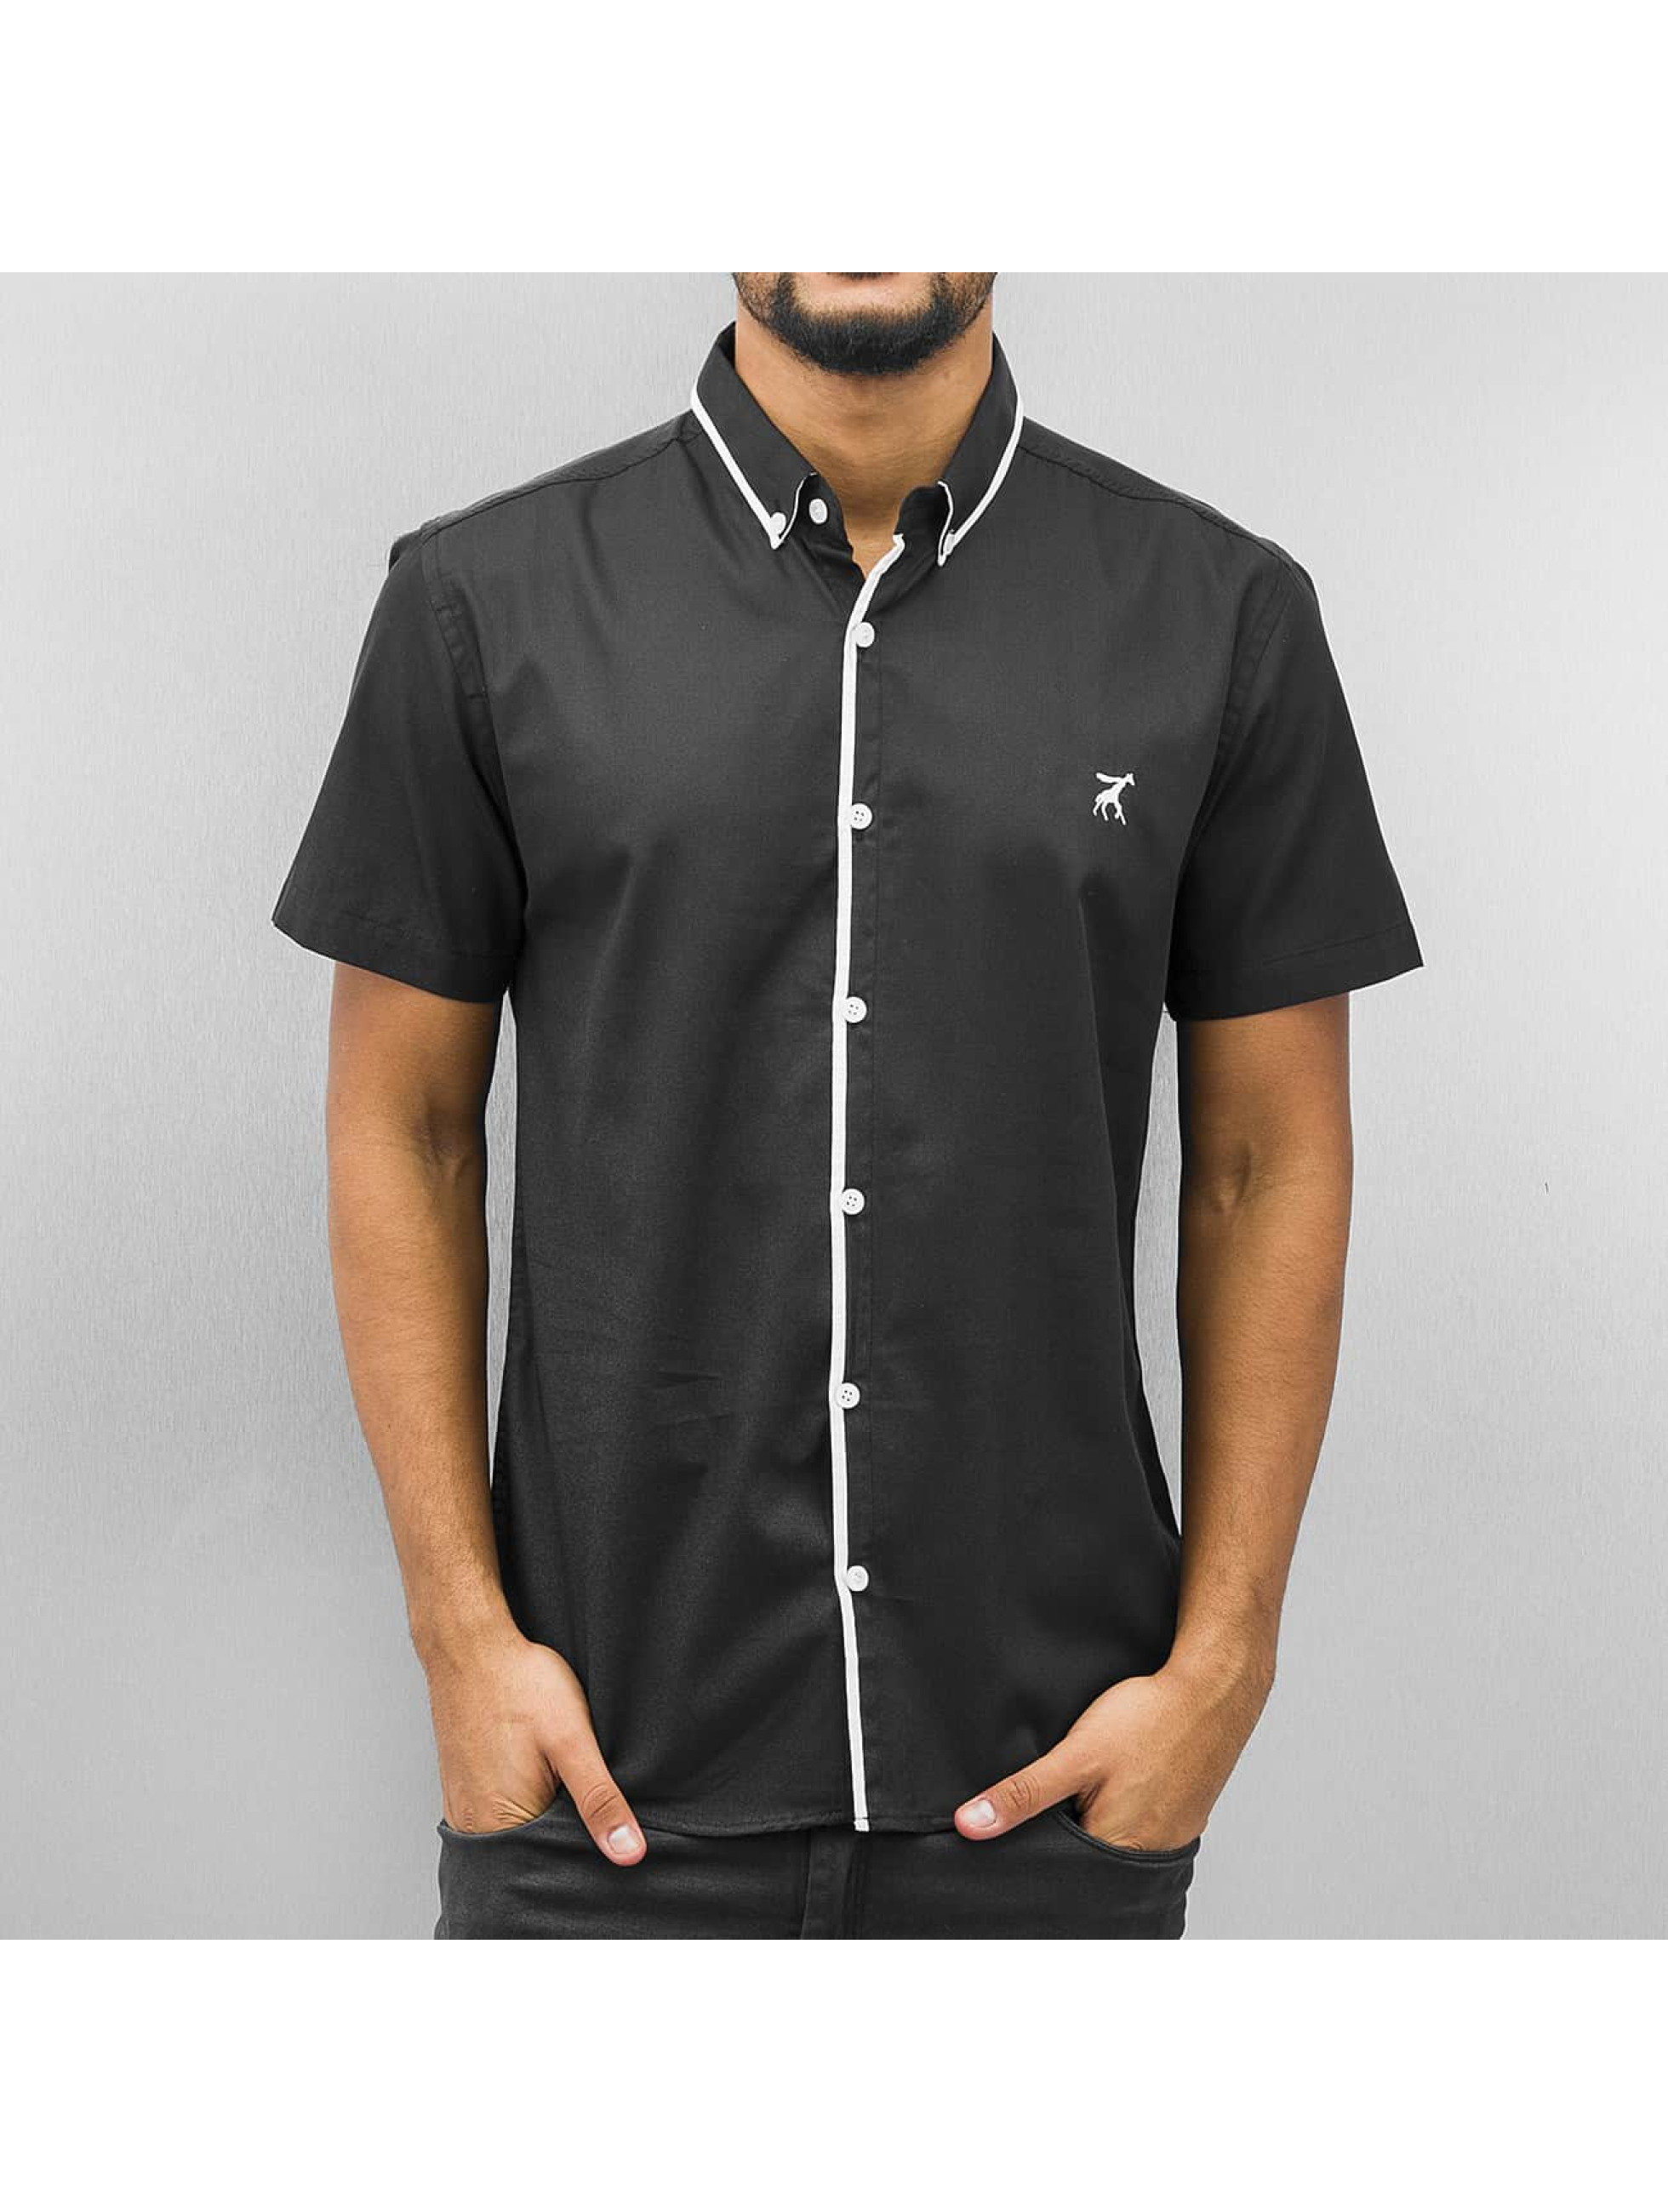 Cazzy Clang / Shirt Short Sleeves in black S